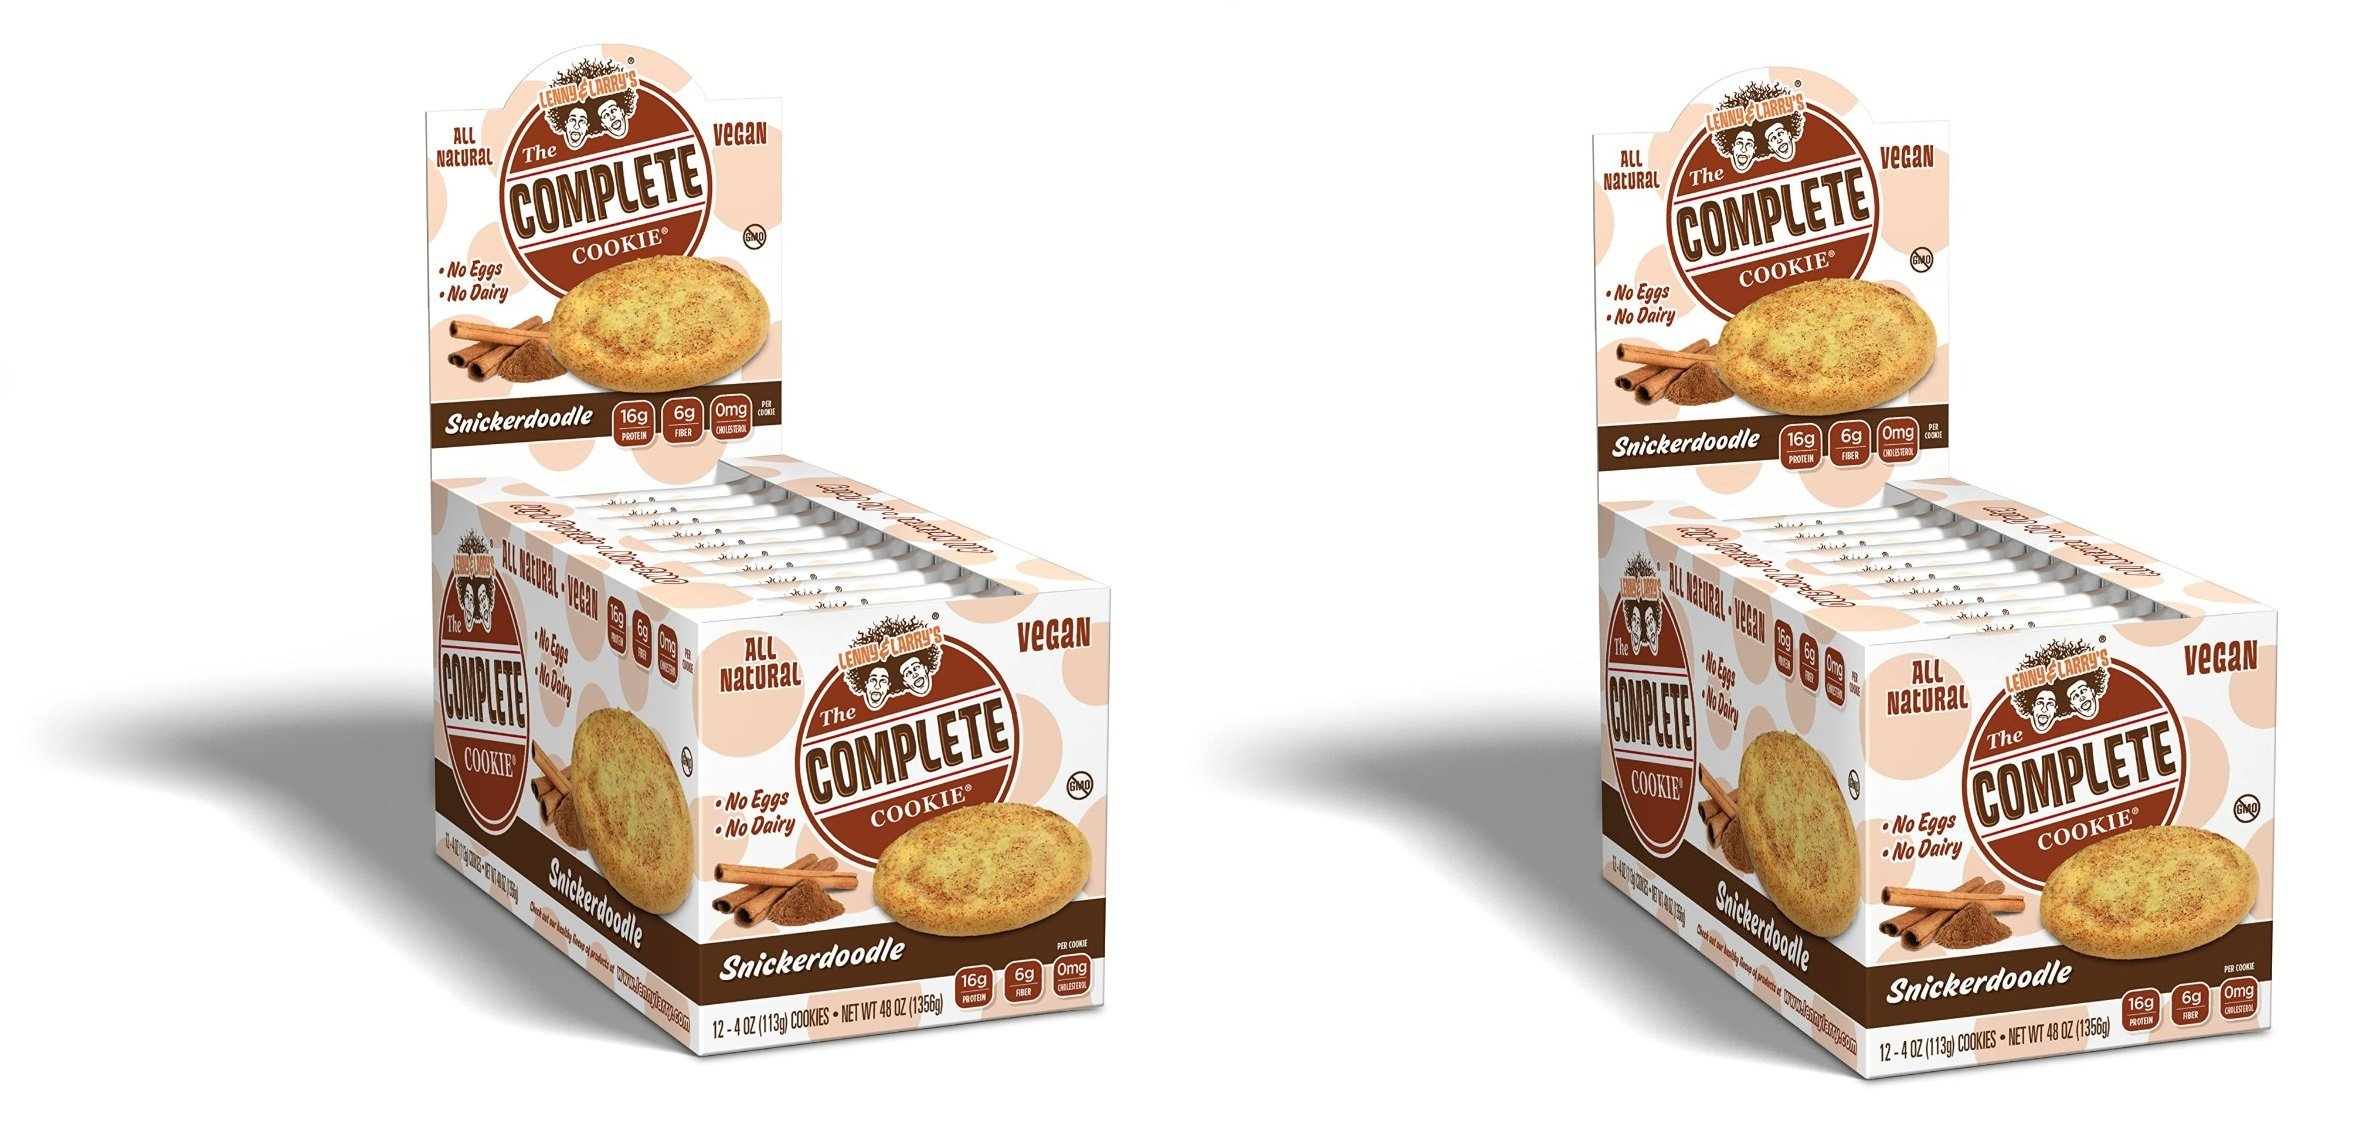 Lenny & Larry's The Complete Cookie, Soft baked Snickerdoodle, 16g Plant Protein, 4oz cookie, 24 count by Lenny & Larry's